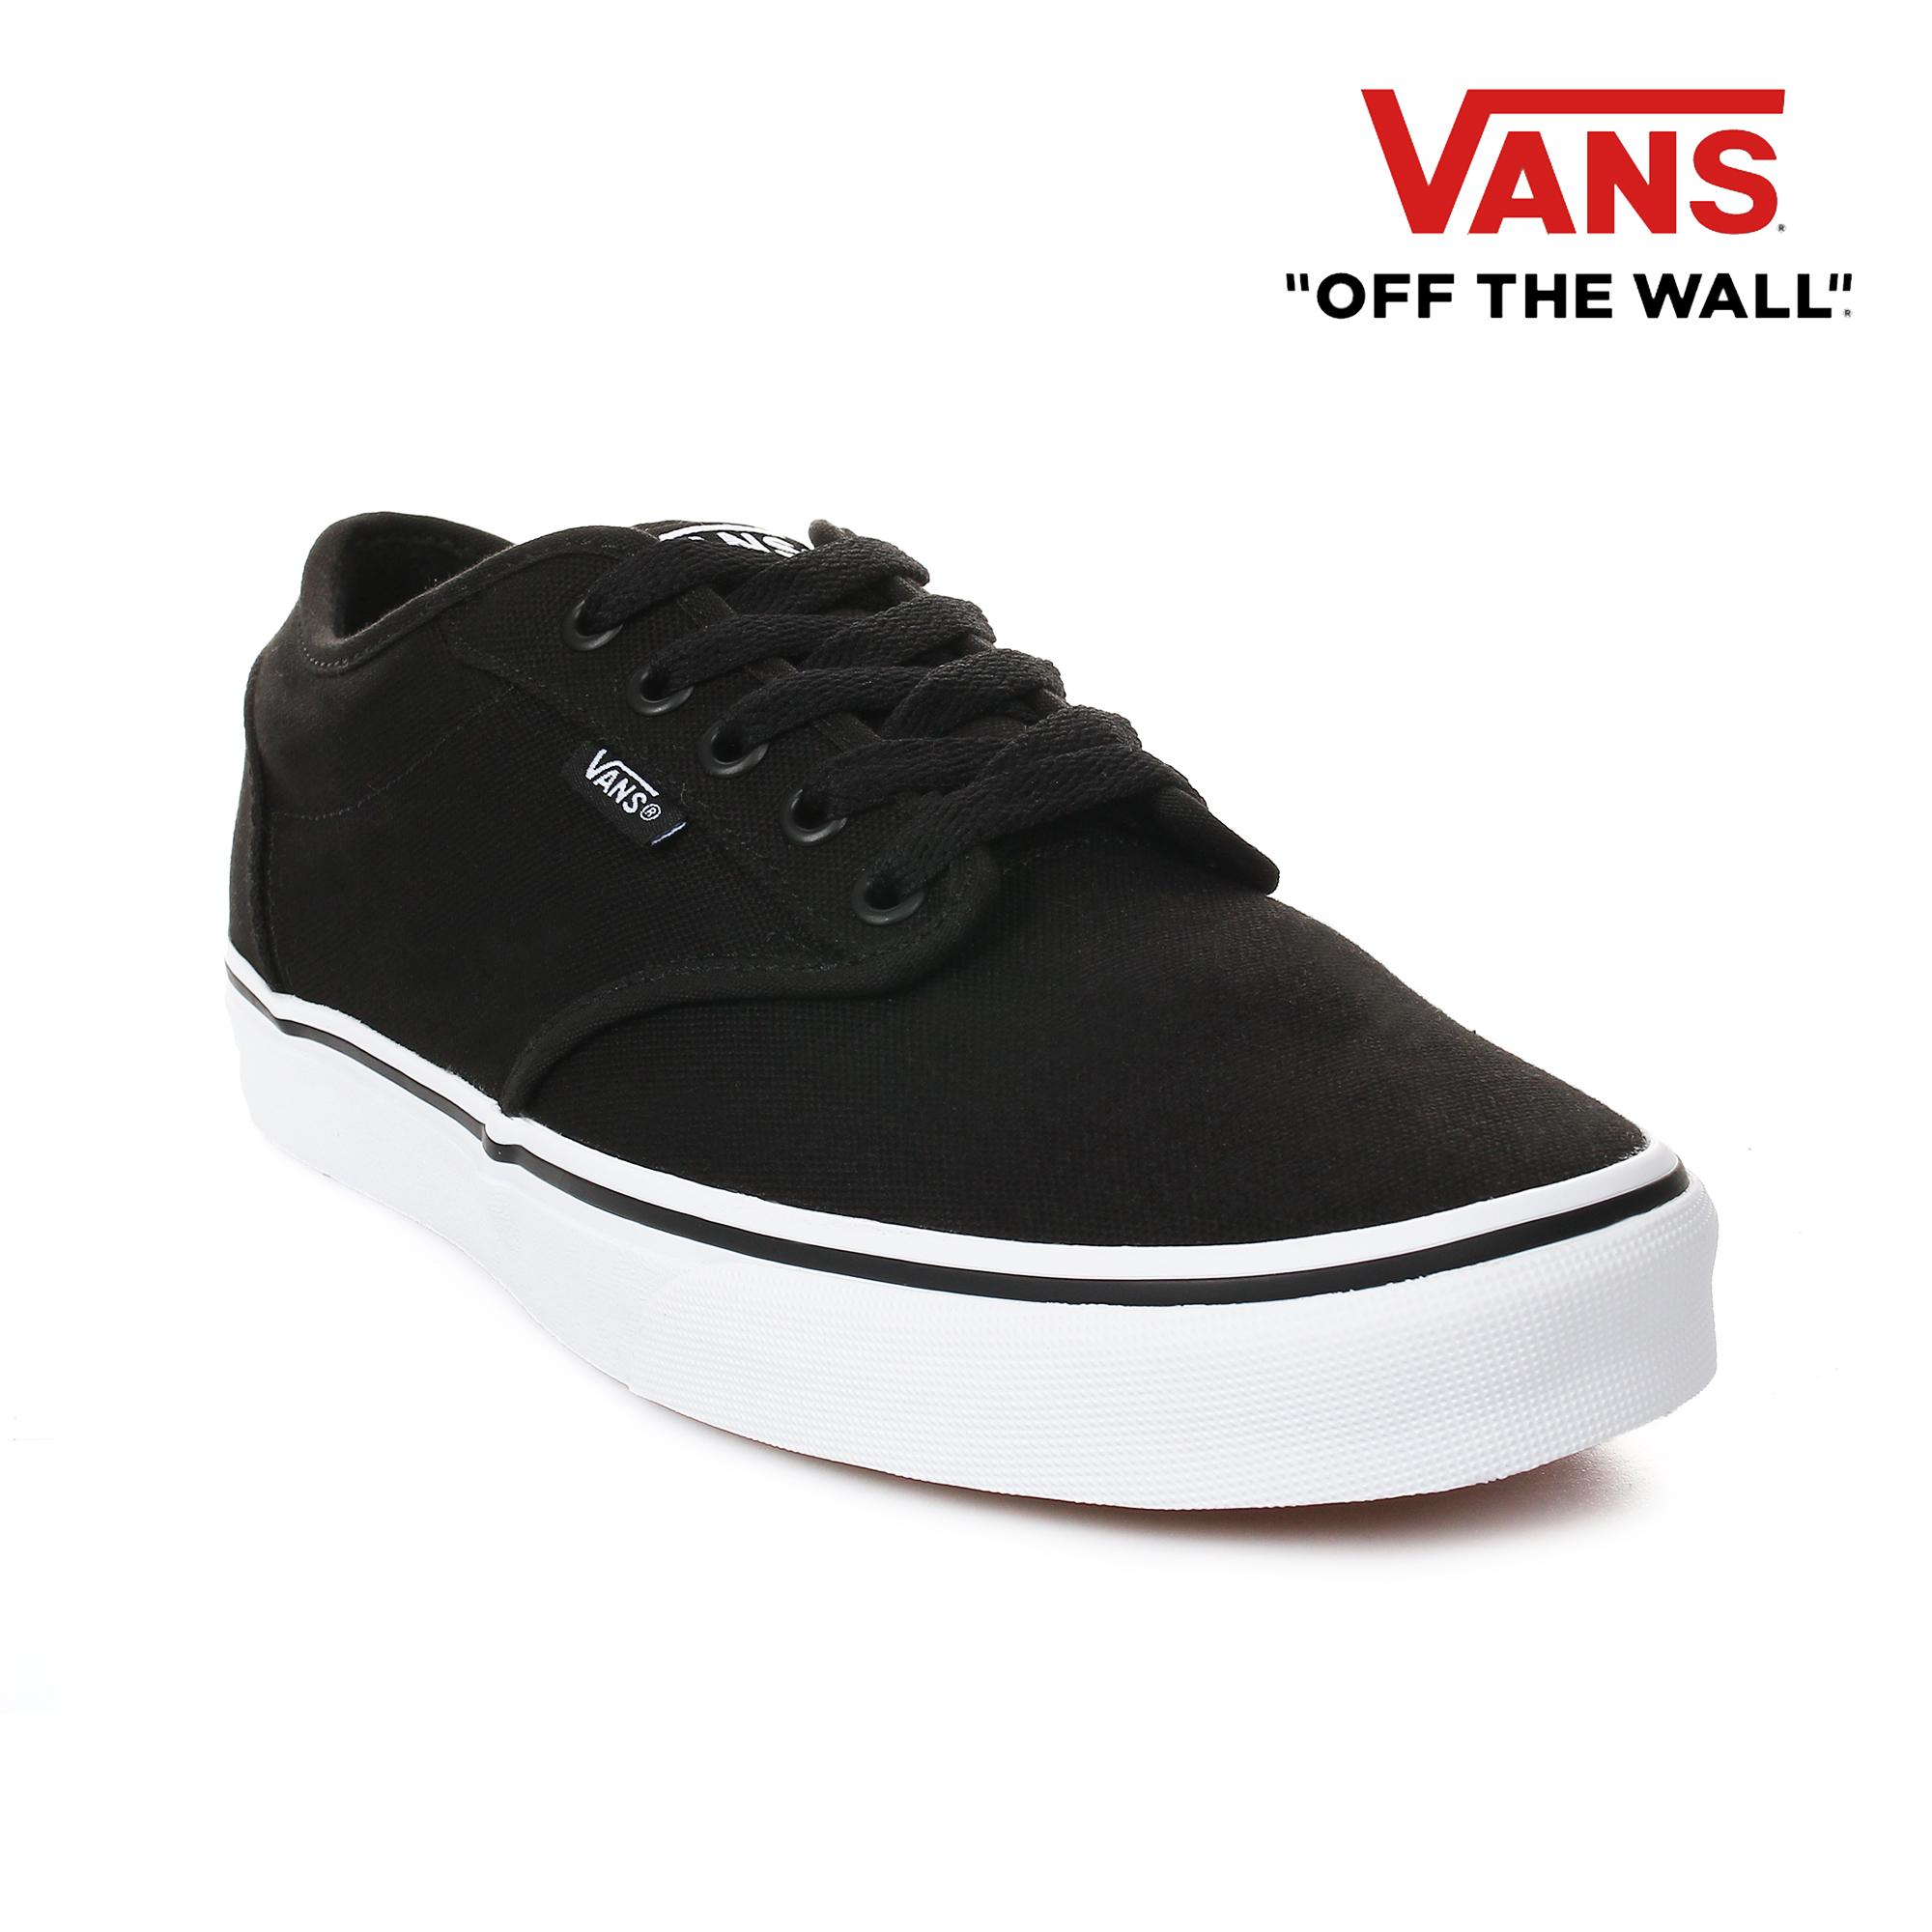 Vans Shoes for Men Philippines - Vans Men s Shoes for sale - prices ... 2c2d6137b